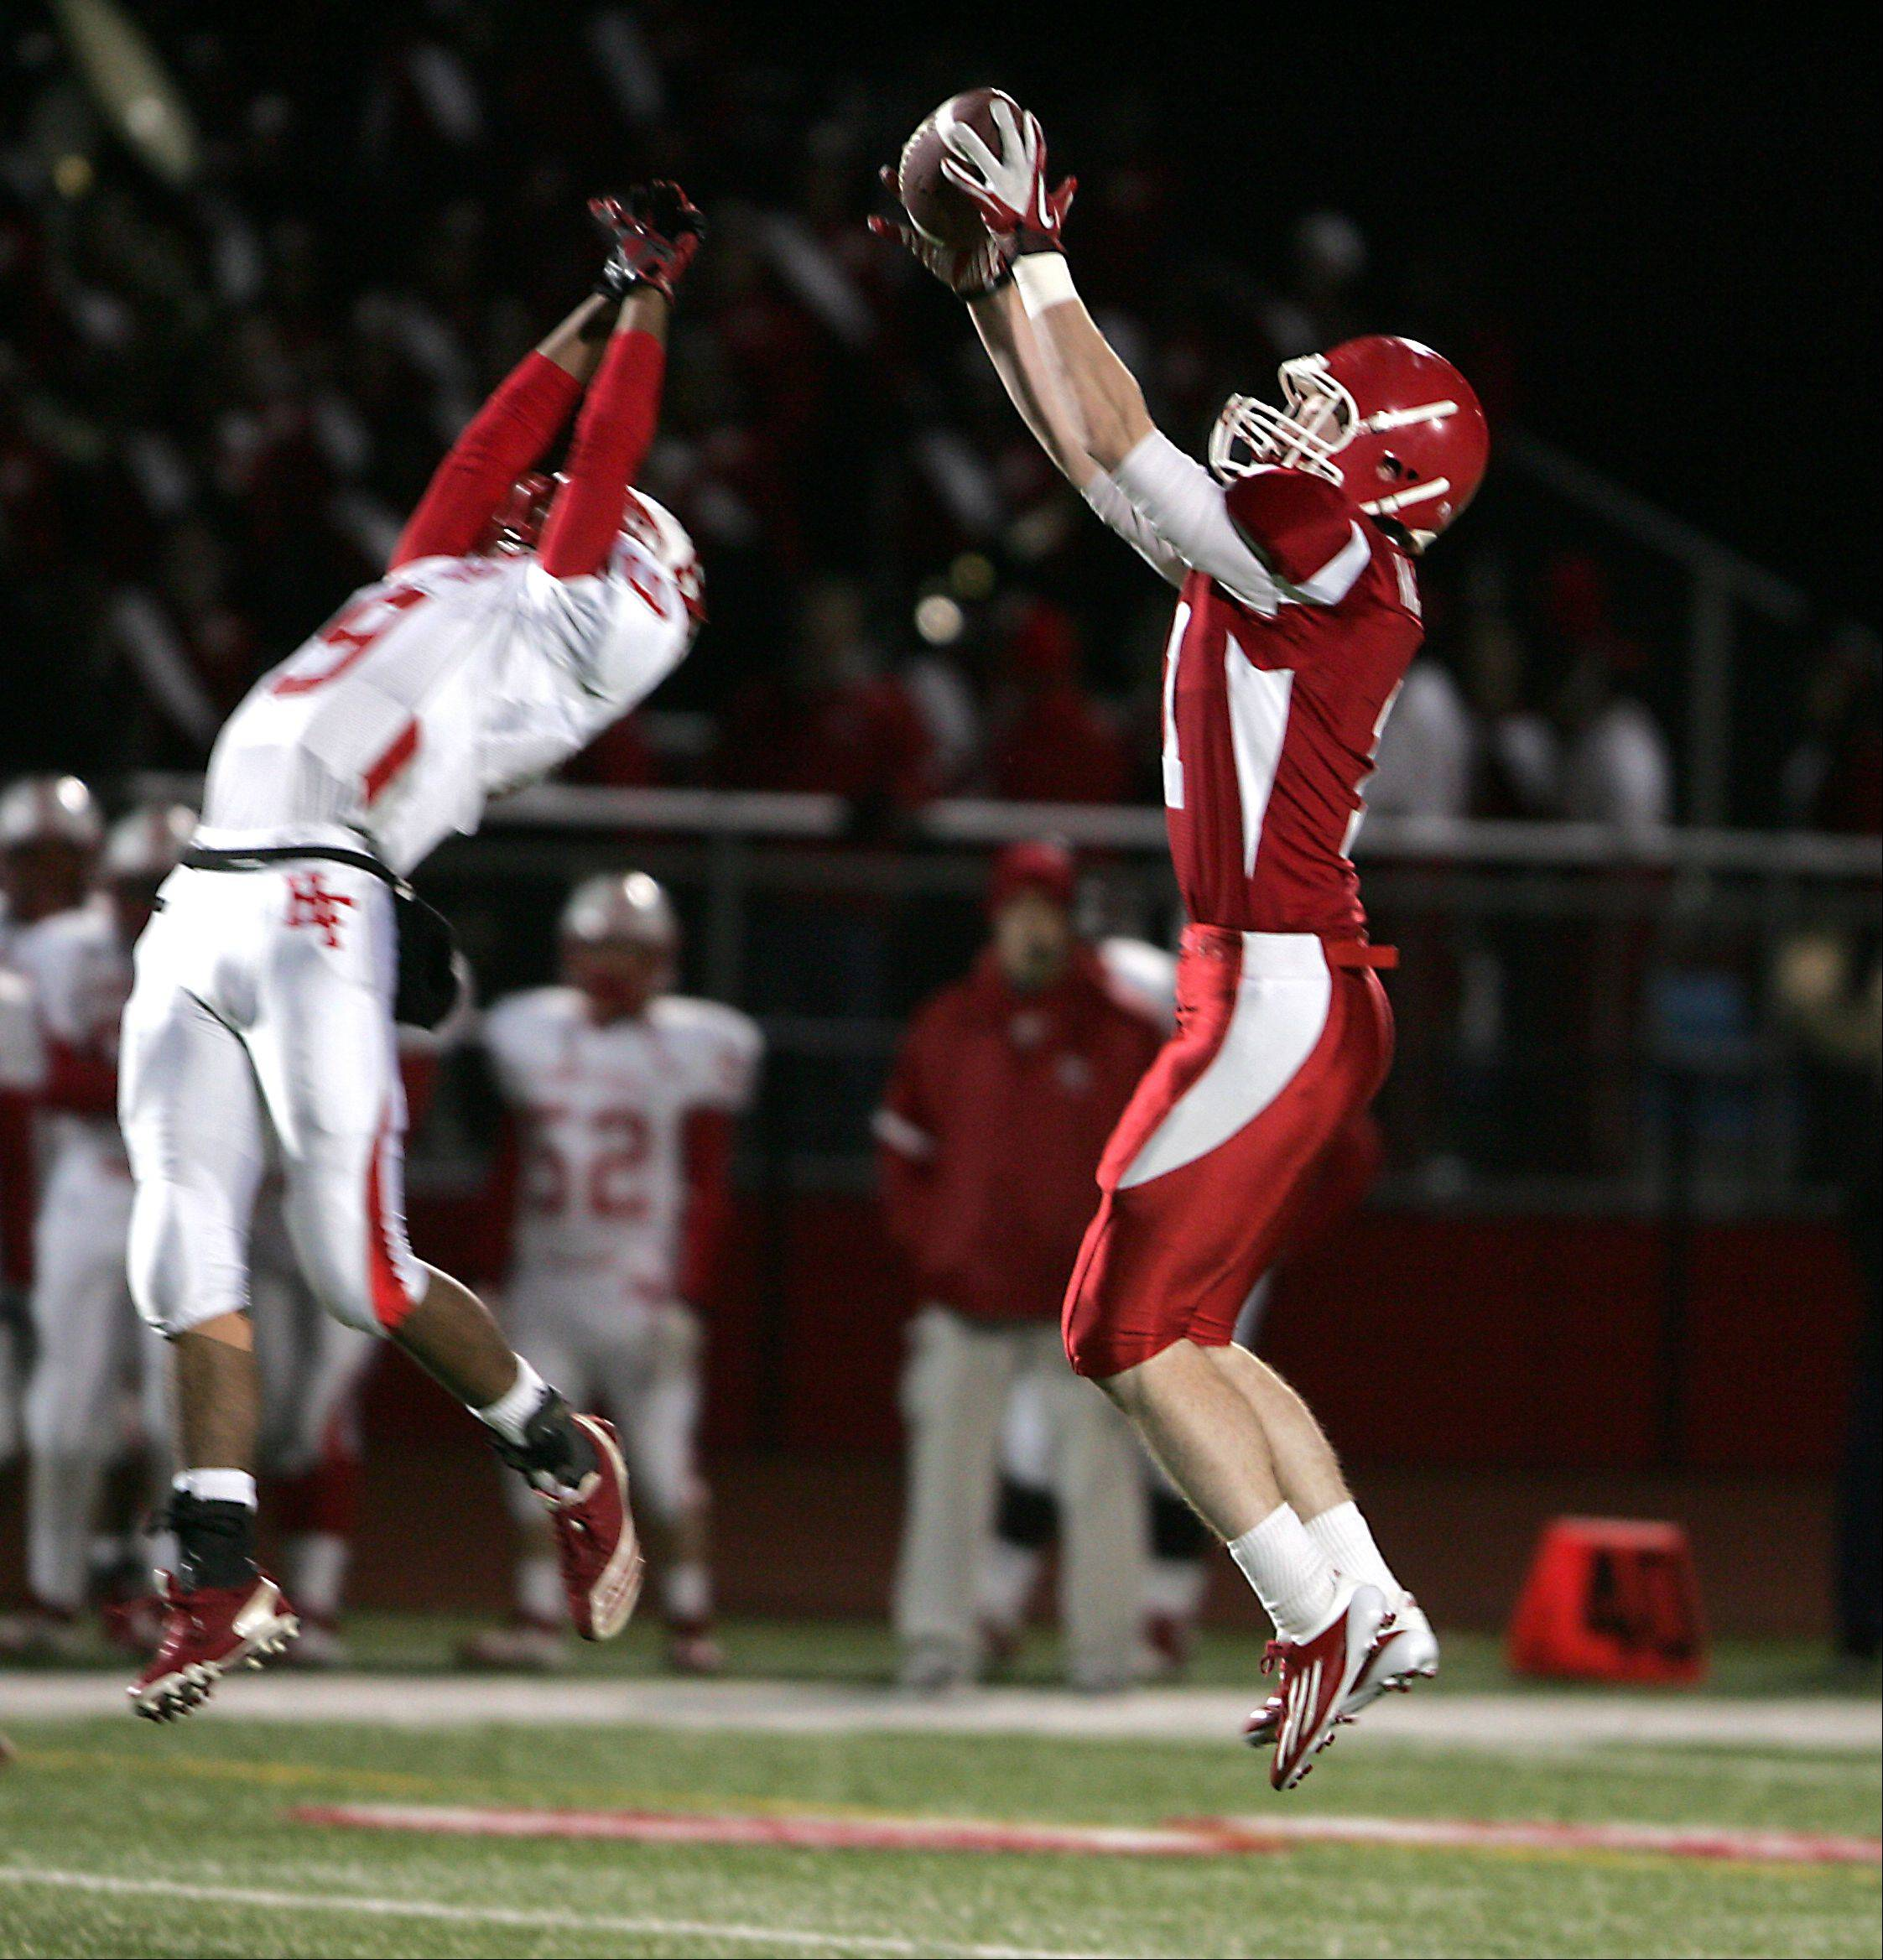 Naperville Central's Jimmy Nashert, right, intercepts a Homewood-Flossmoor pass during Friday's Class 8A quarterfinal action in Naperville.